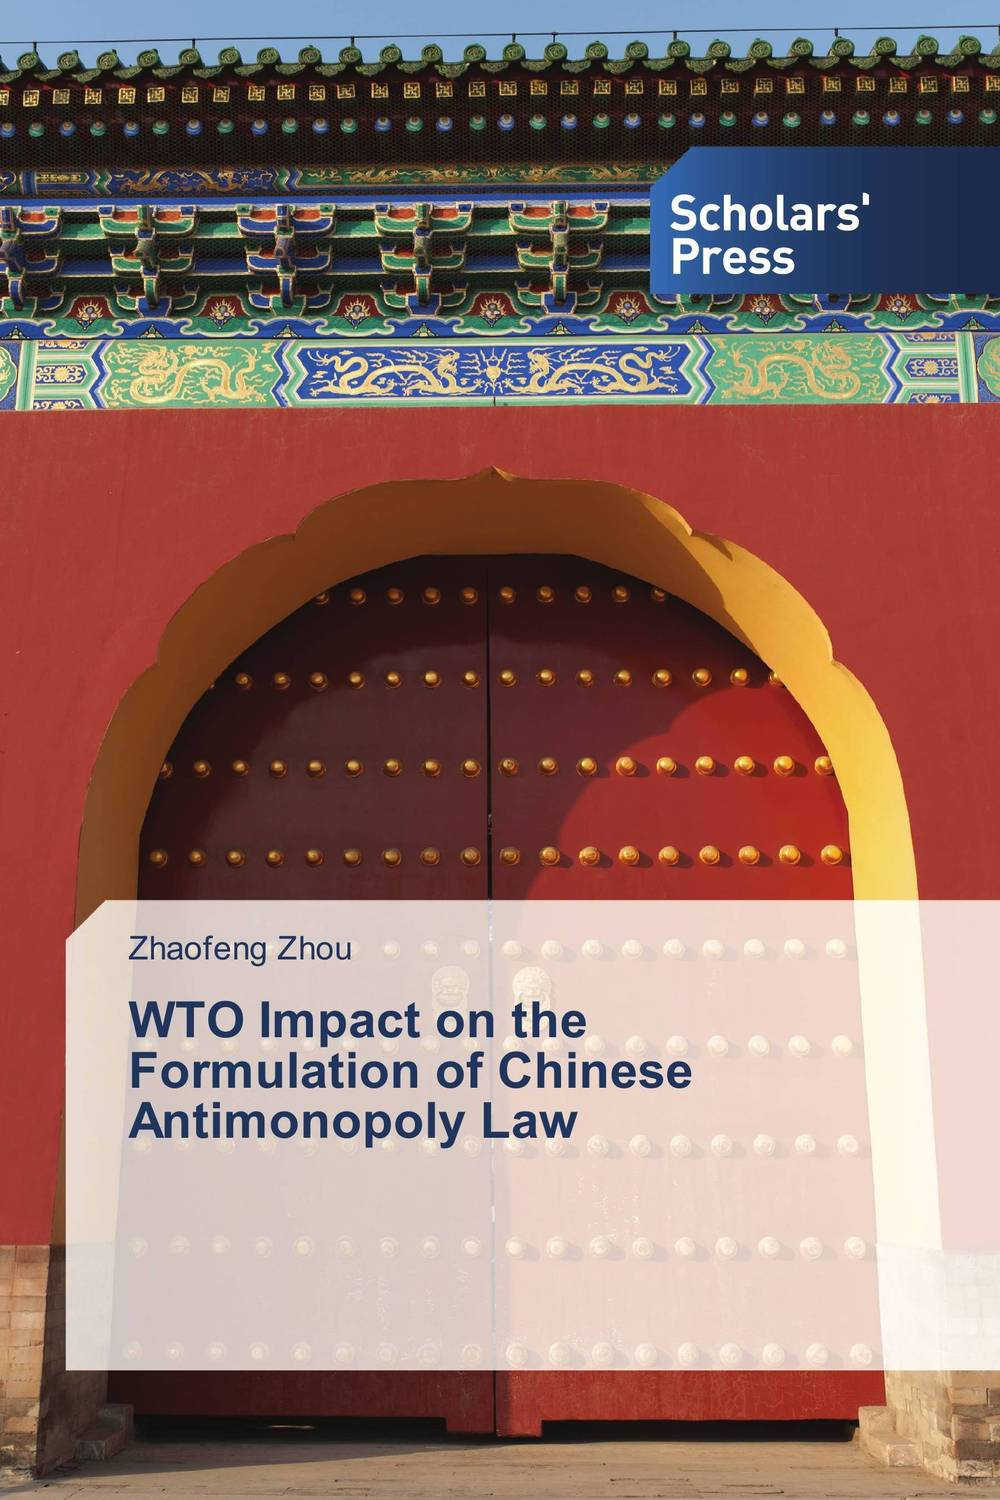 WTO Impact on the Formulation of Chinese Antimonopoly Law